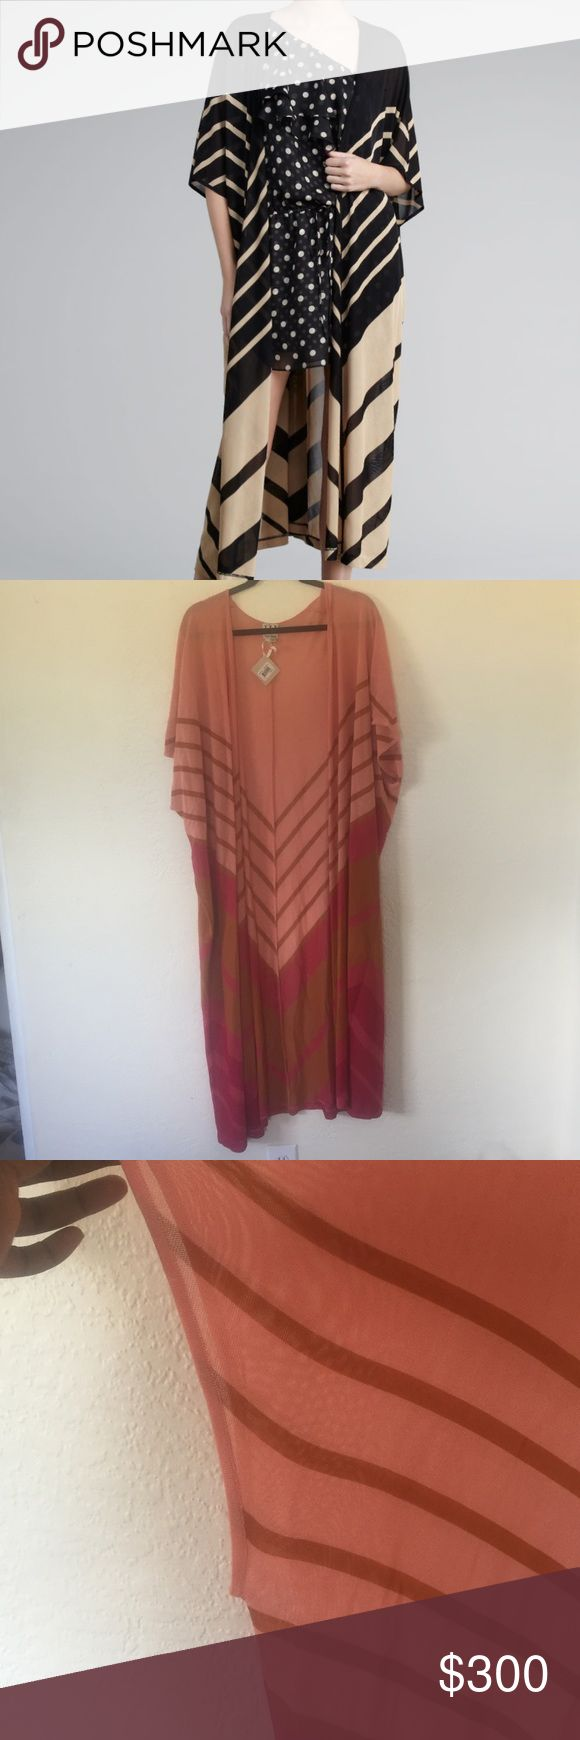 BNWT HAUTE HIPPIE SILK LONG KIMONO CARDIGAN M L Beautiful long silk kimono cardigan by Haute Hippie. This is the same one worn by kardashians but in the fuchsia tan combo. Size medium large. BRAND NEW WITH TAGS RETAILS FOR $595 Haute Hippie Tops